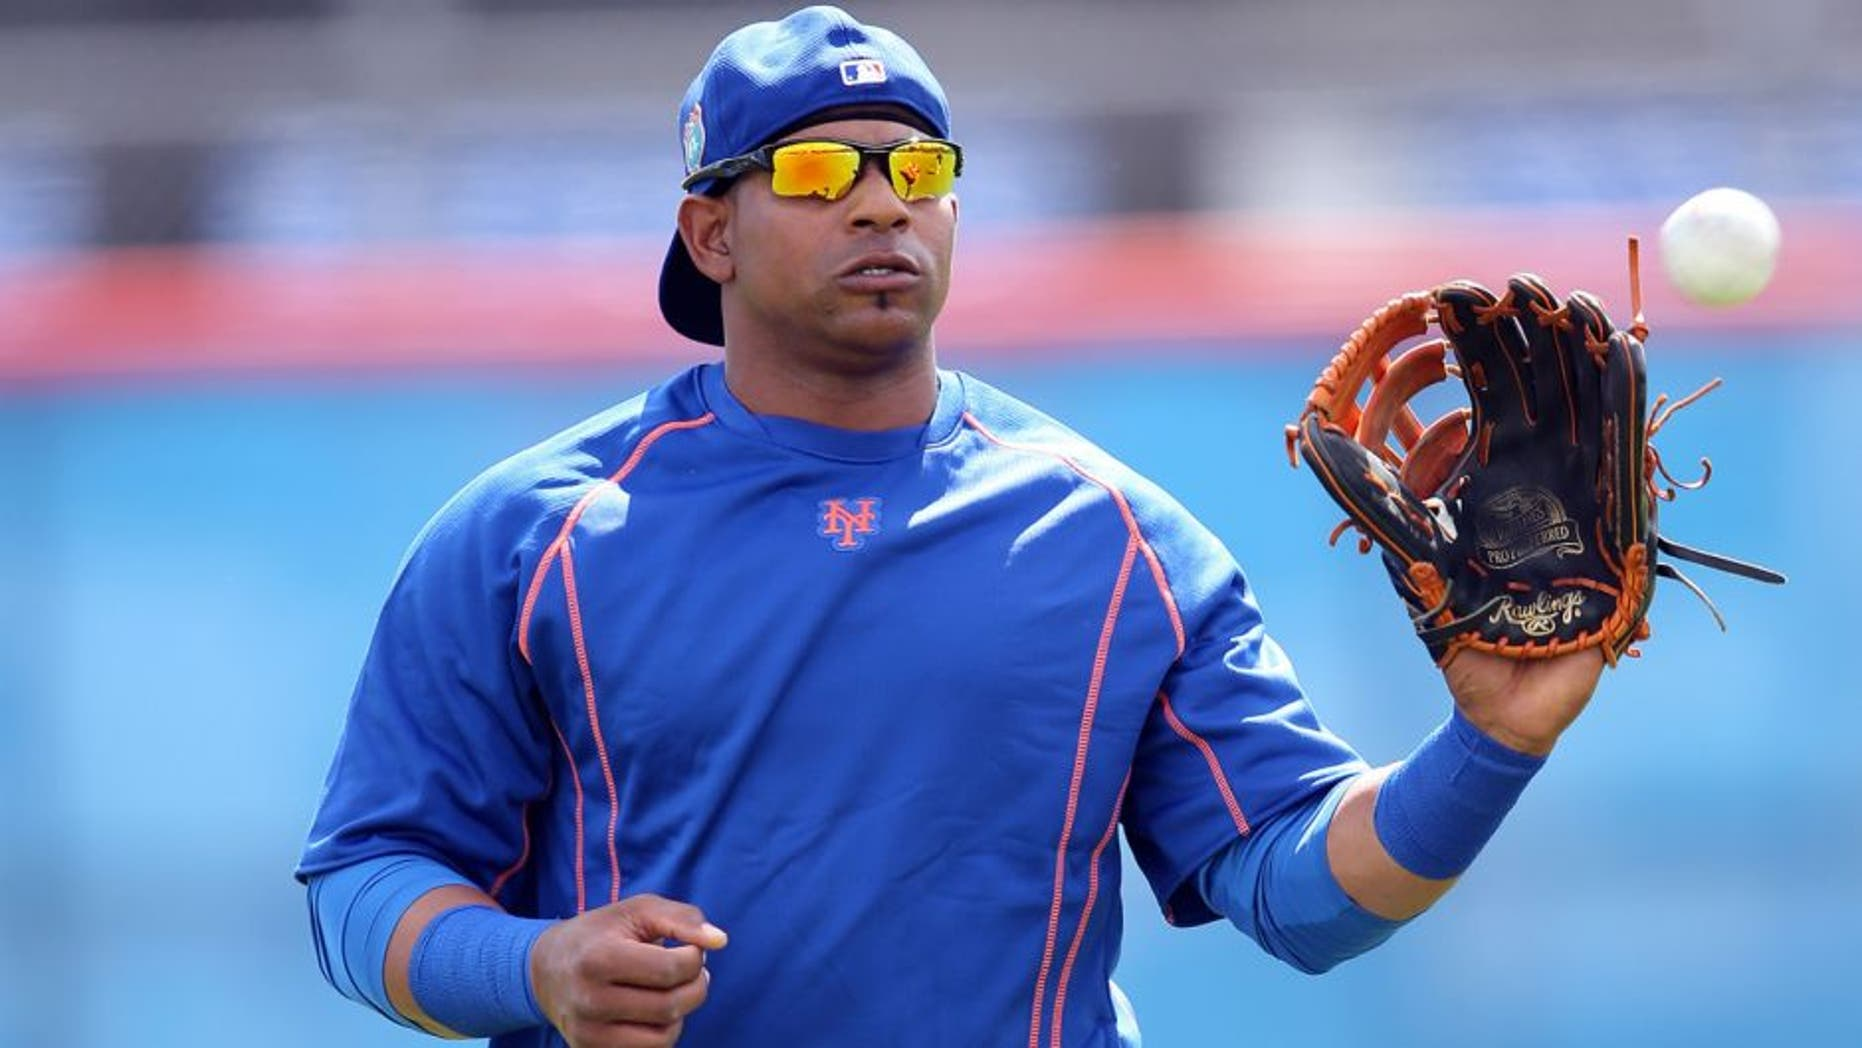 Feb 22, 2016; Port St. Lucie, FL, USA; New York Mets left fielder Yoenis Cespedes (52) warms up during spring training work out drills at Tradition Field. Mandatory Credit: Steve Mitchell-USA TODAY Sports